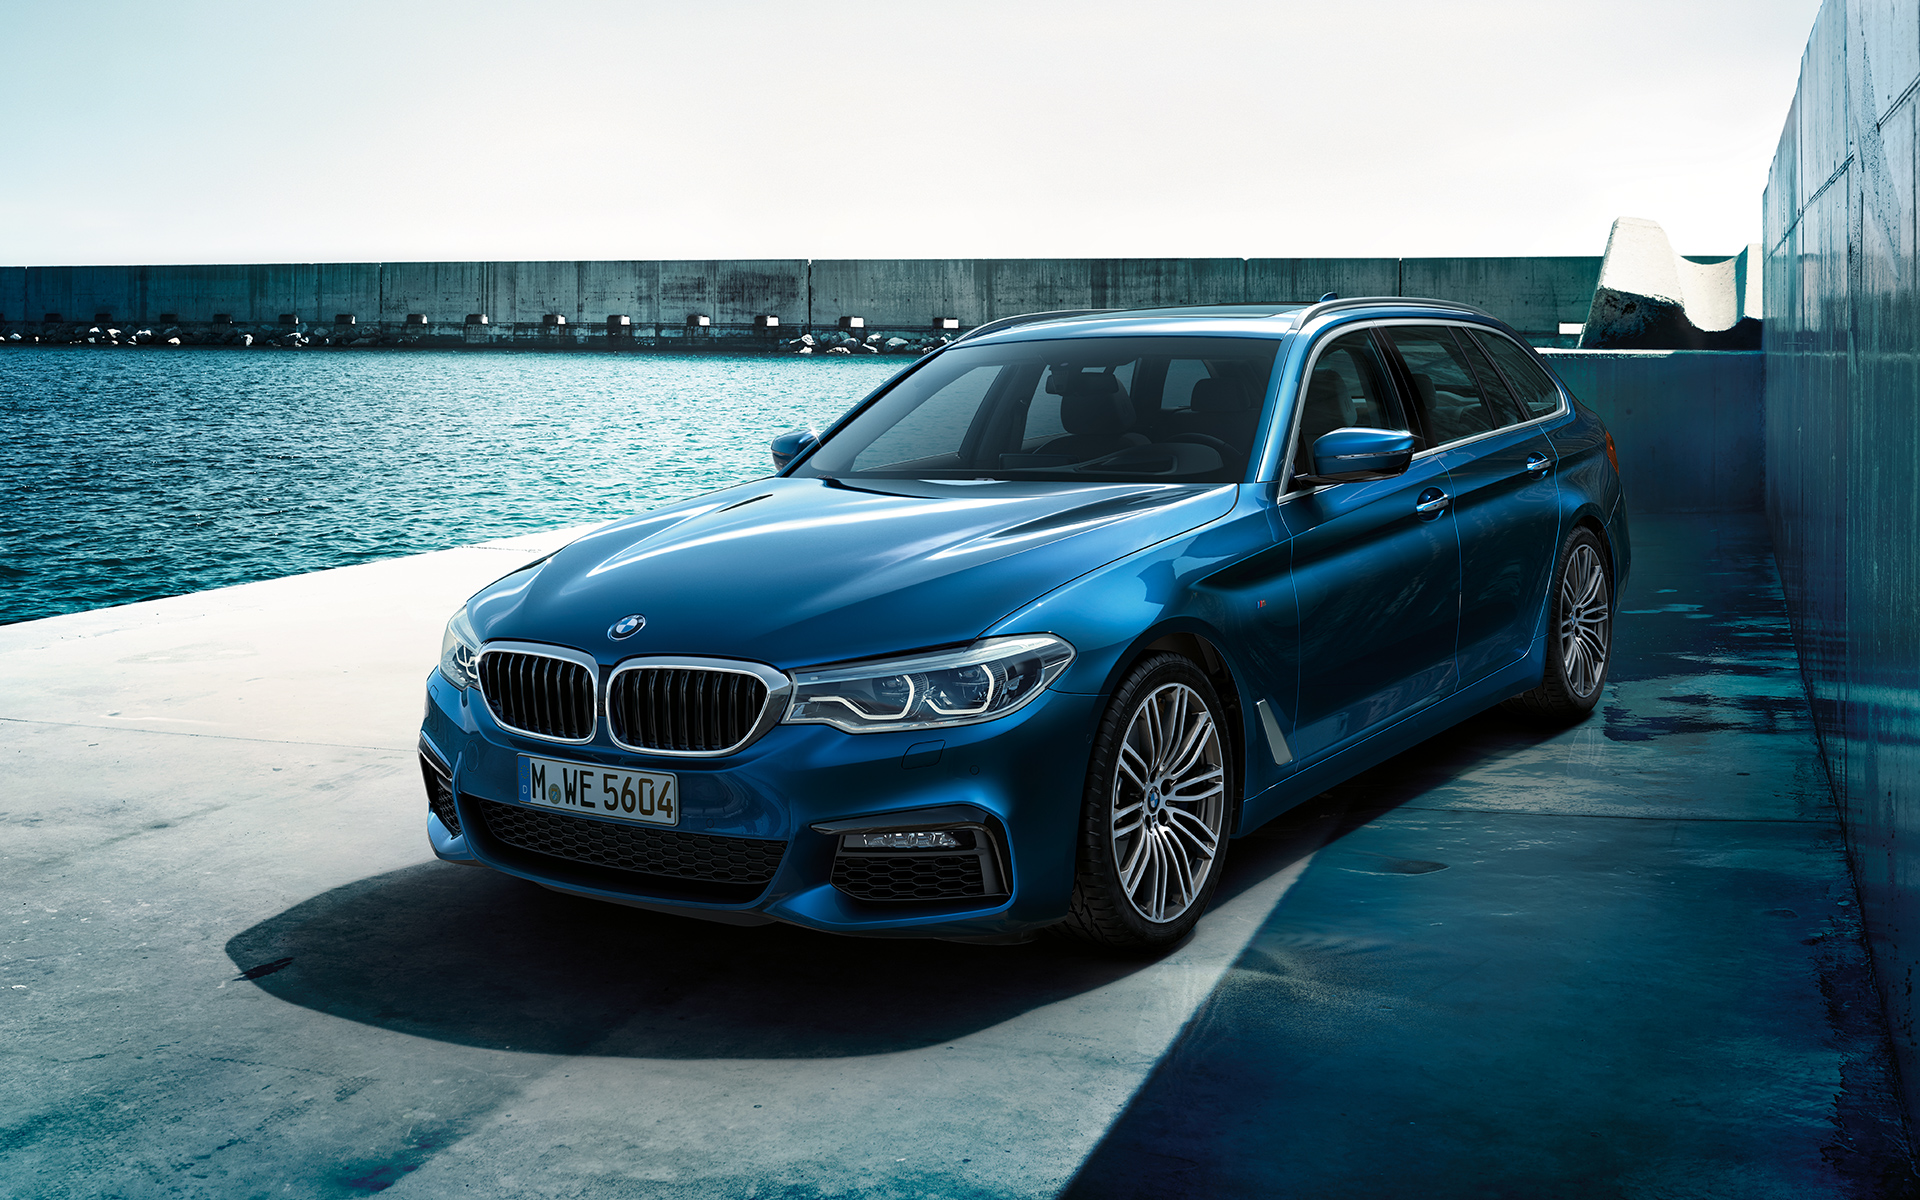 Gorgeous Wallpapers Of The New 2017 Bmw 5 Series Touring